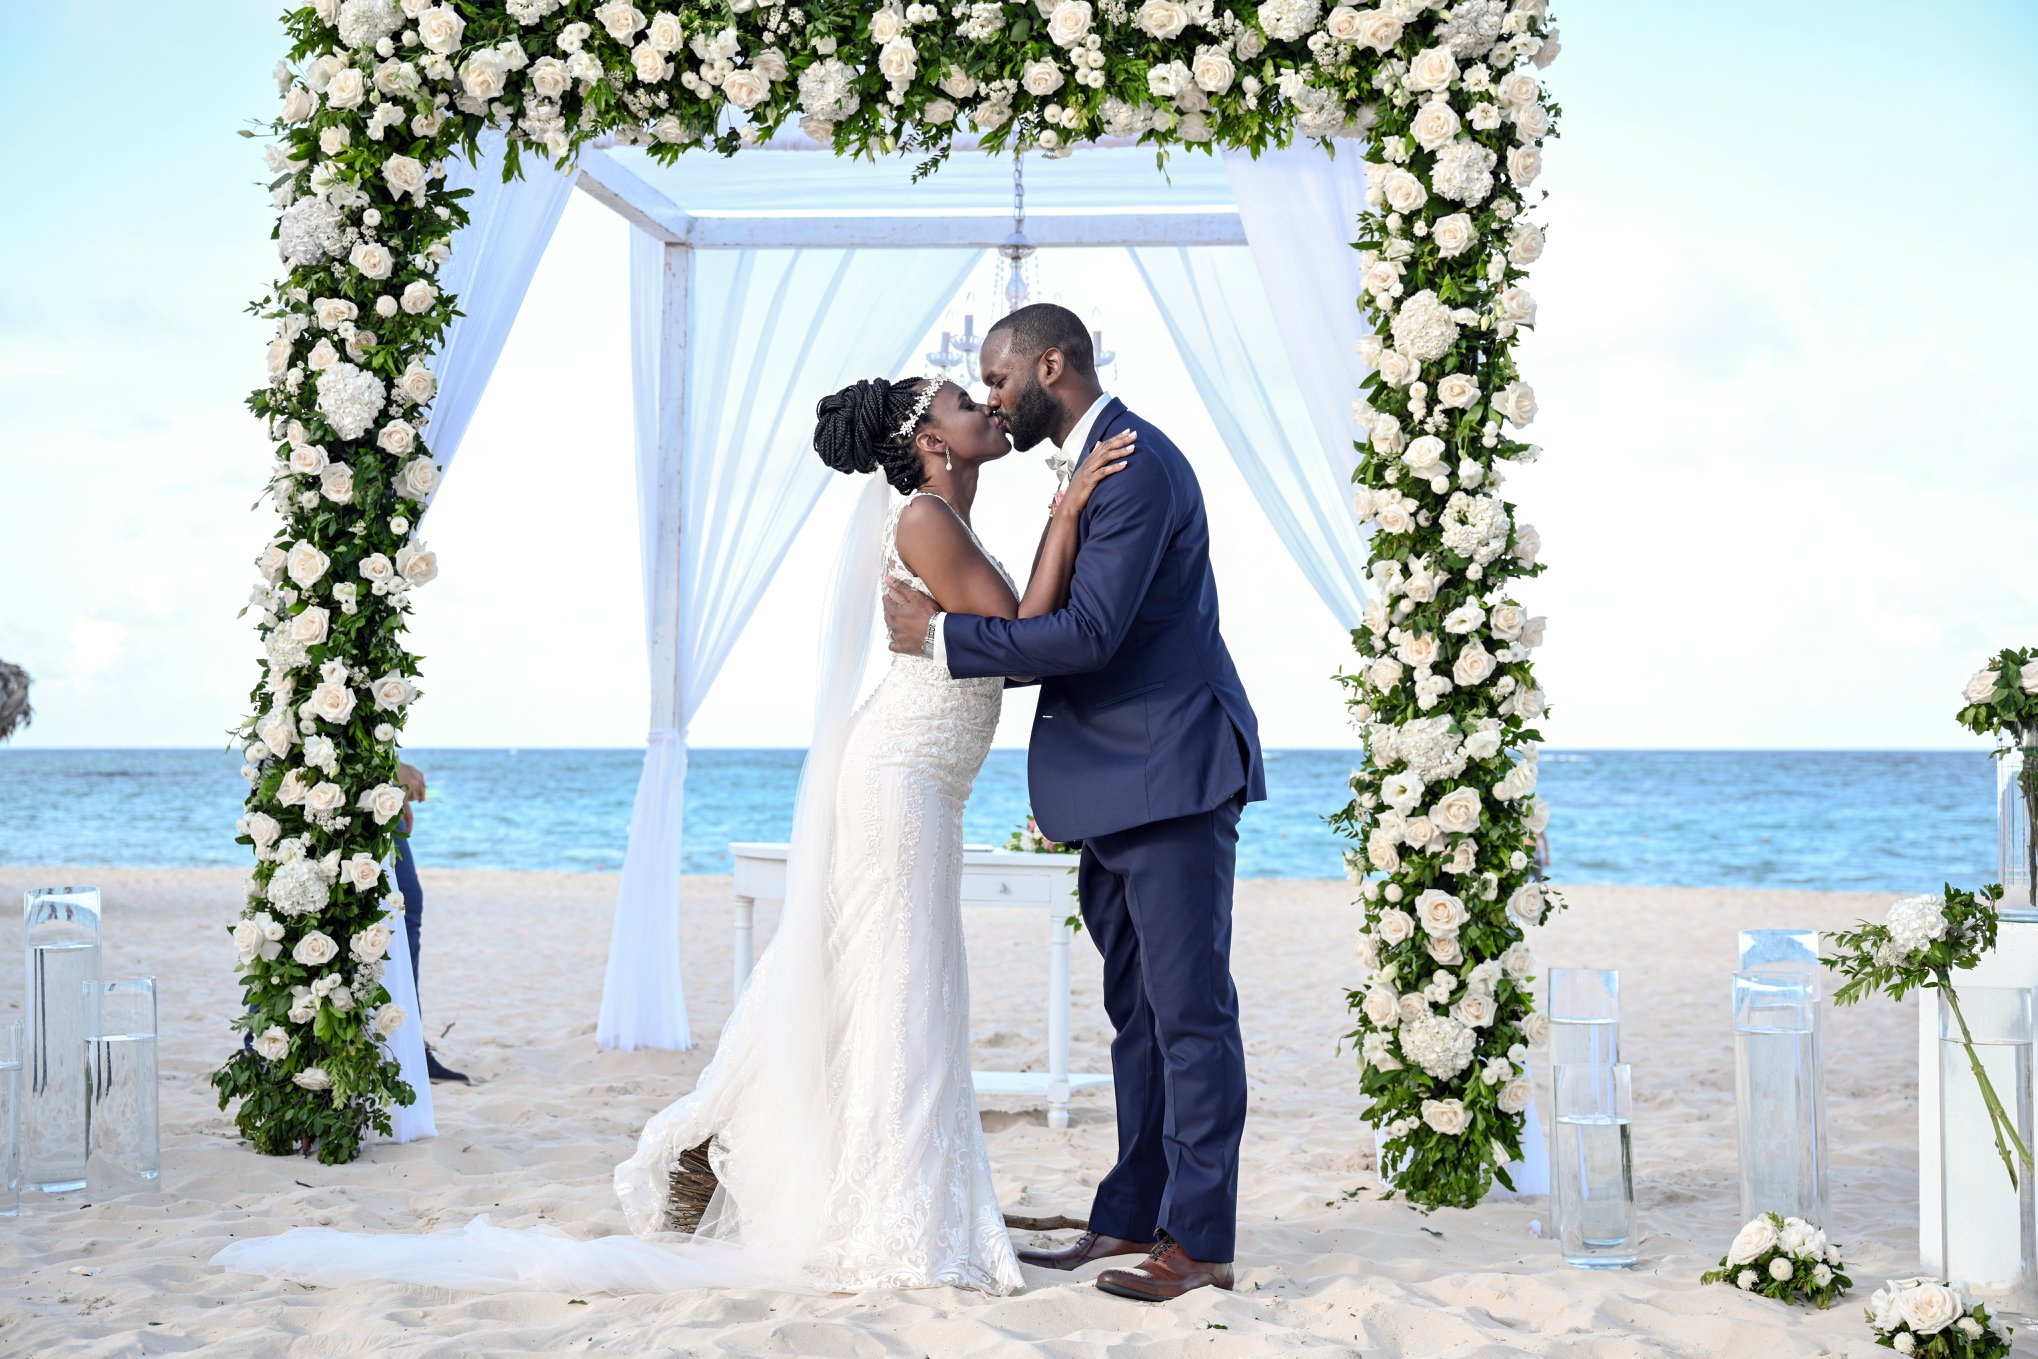 12 Photos To Inspire Your Beach Destination Wedding in the Caribbean & Mexico, Photography by Photo Cine Art